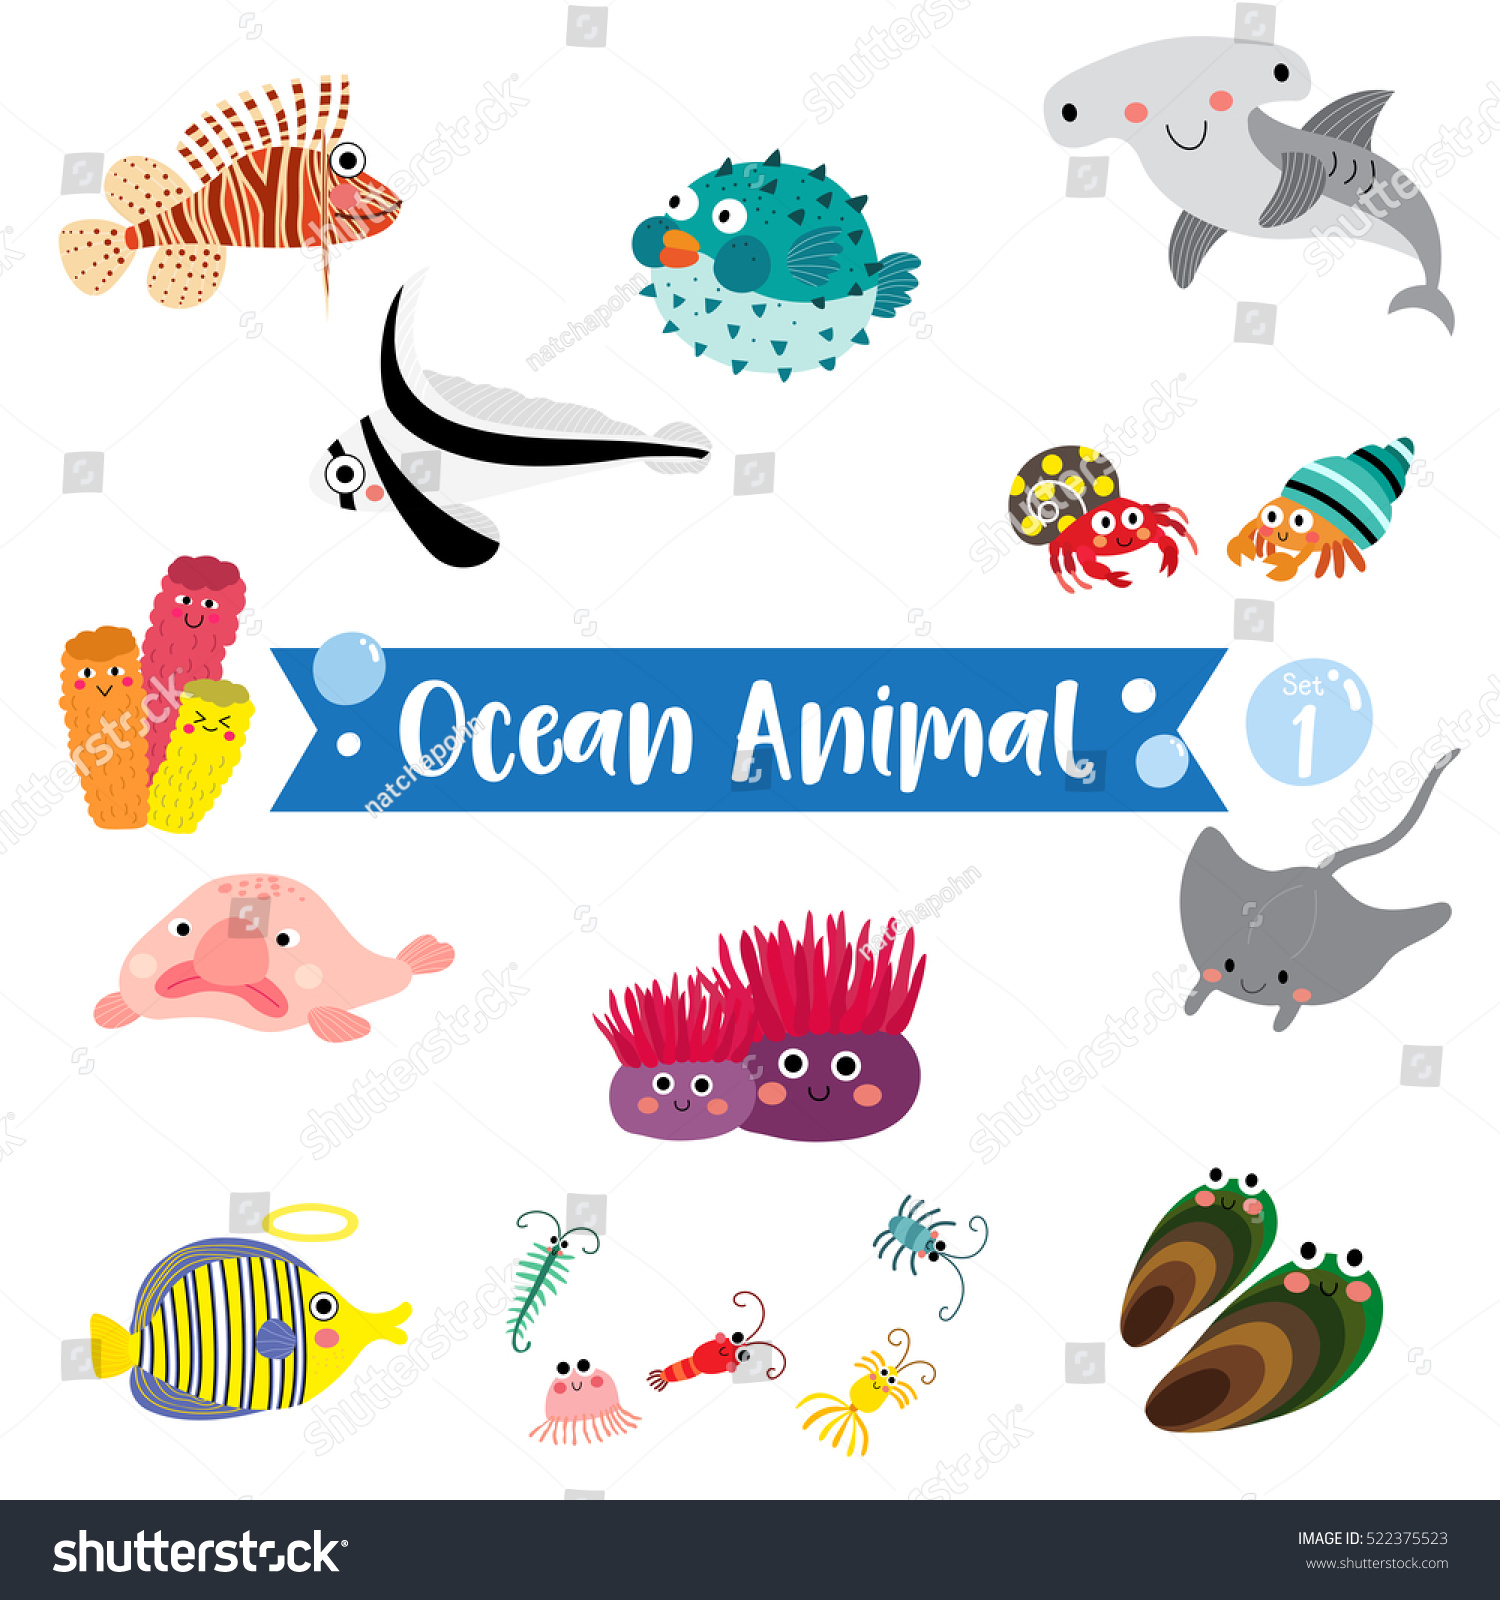 ocean animals cartoon on white background stock vector 522375523